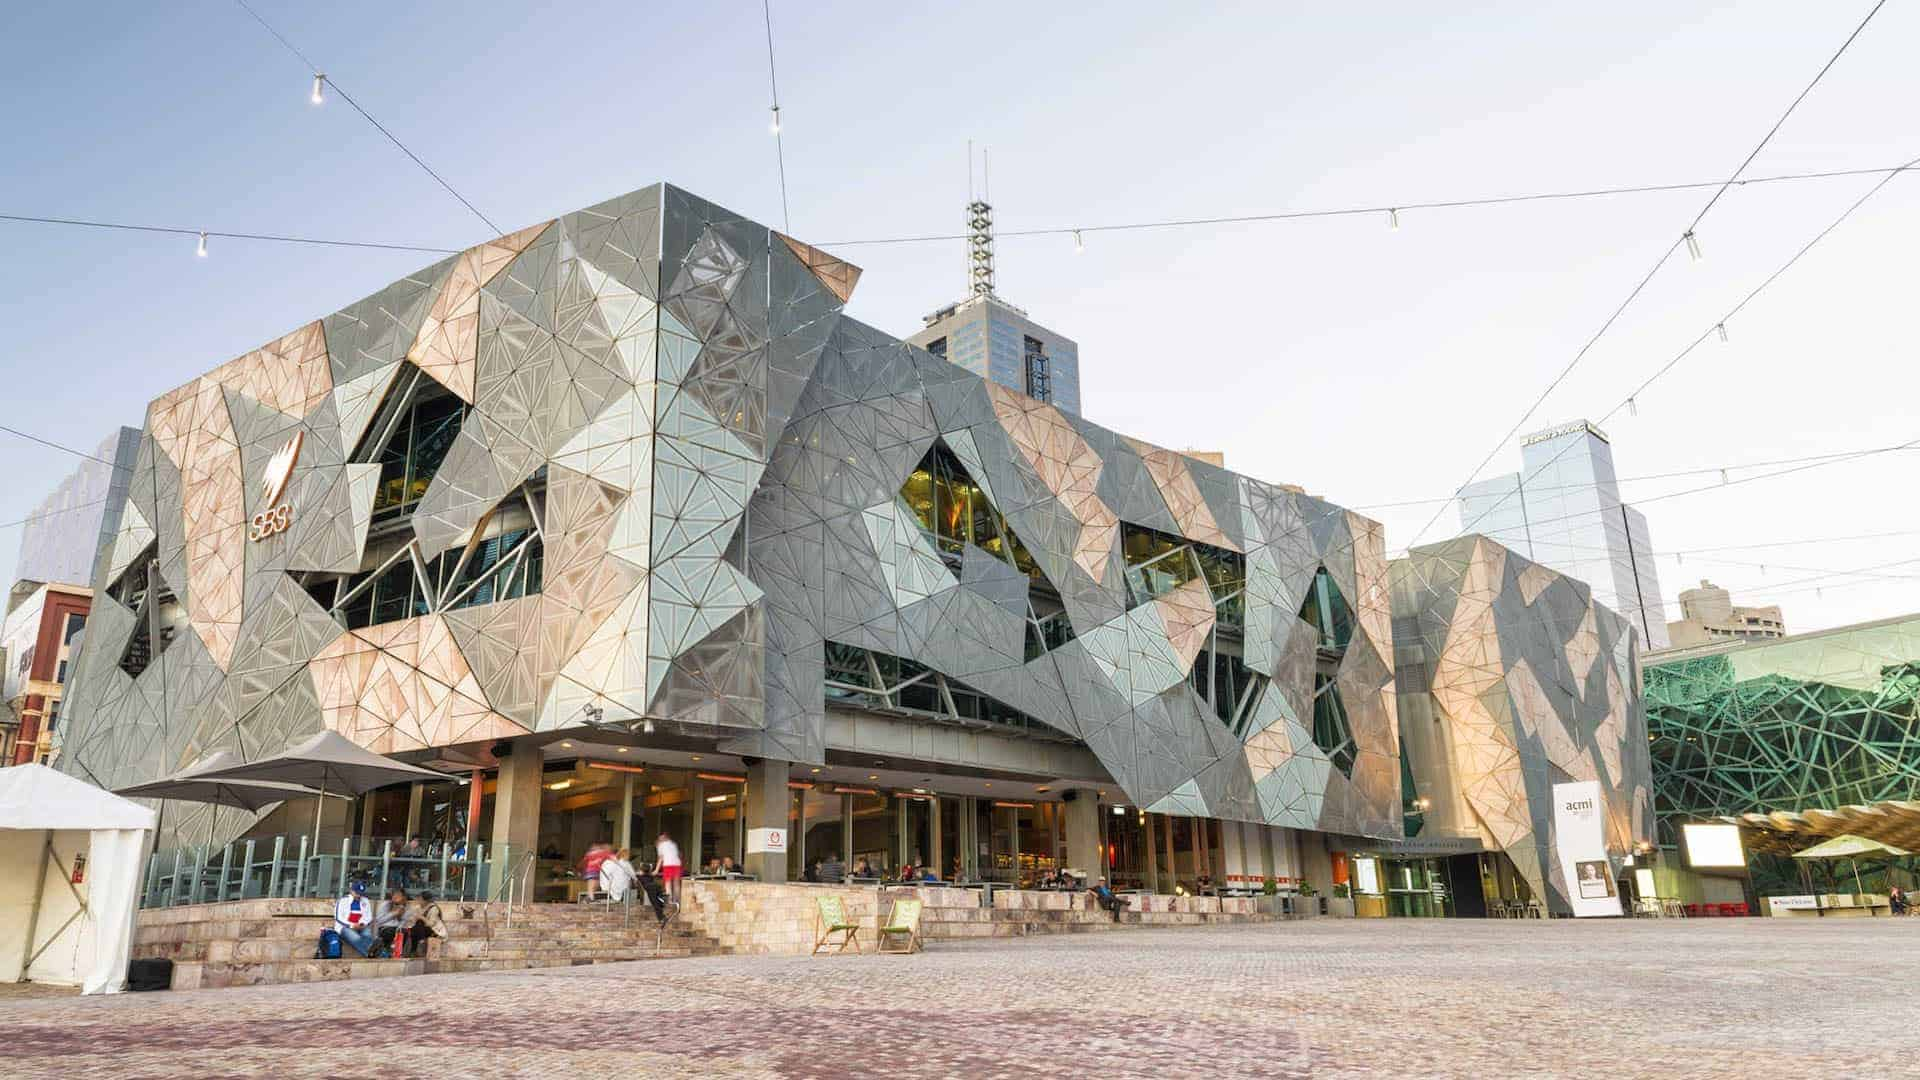 federation square - things to do in melbourne